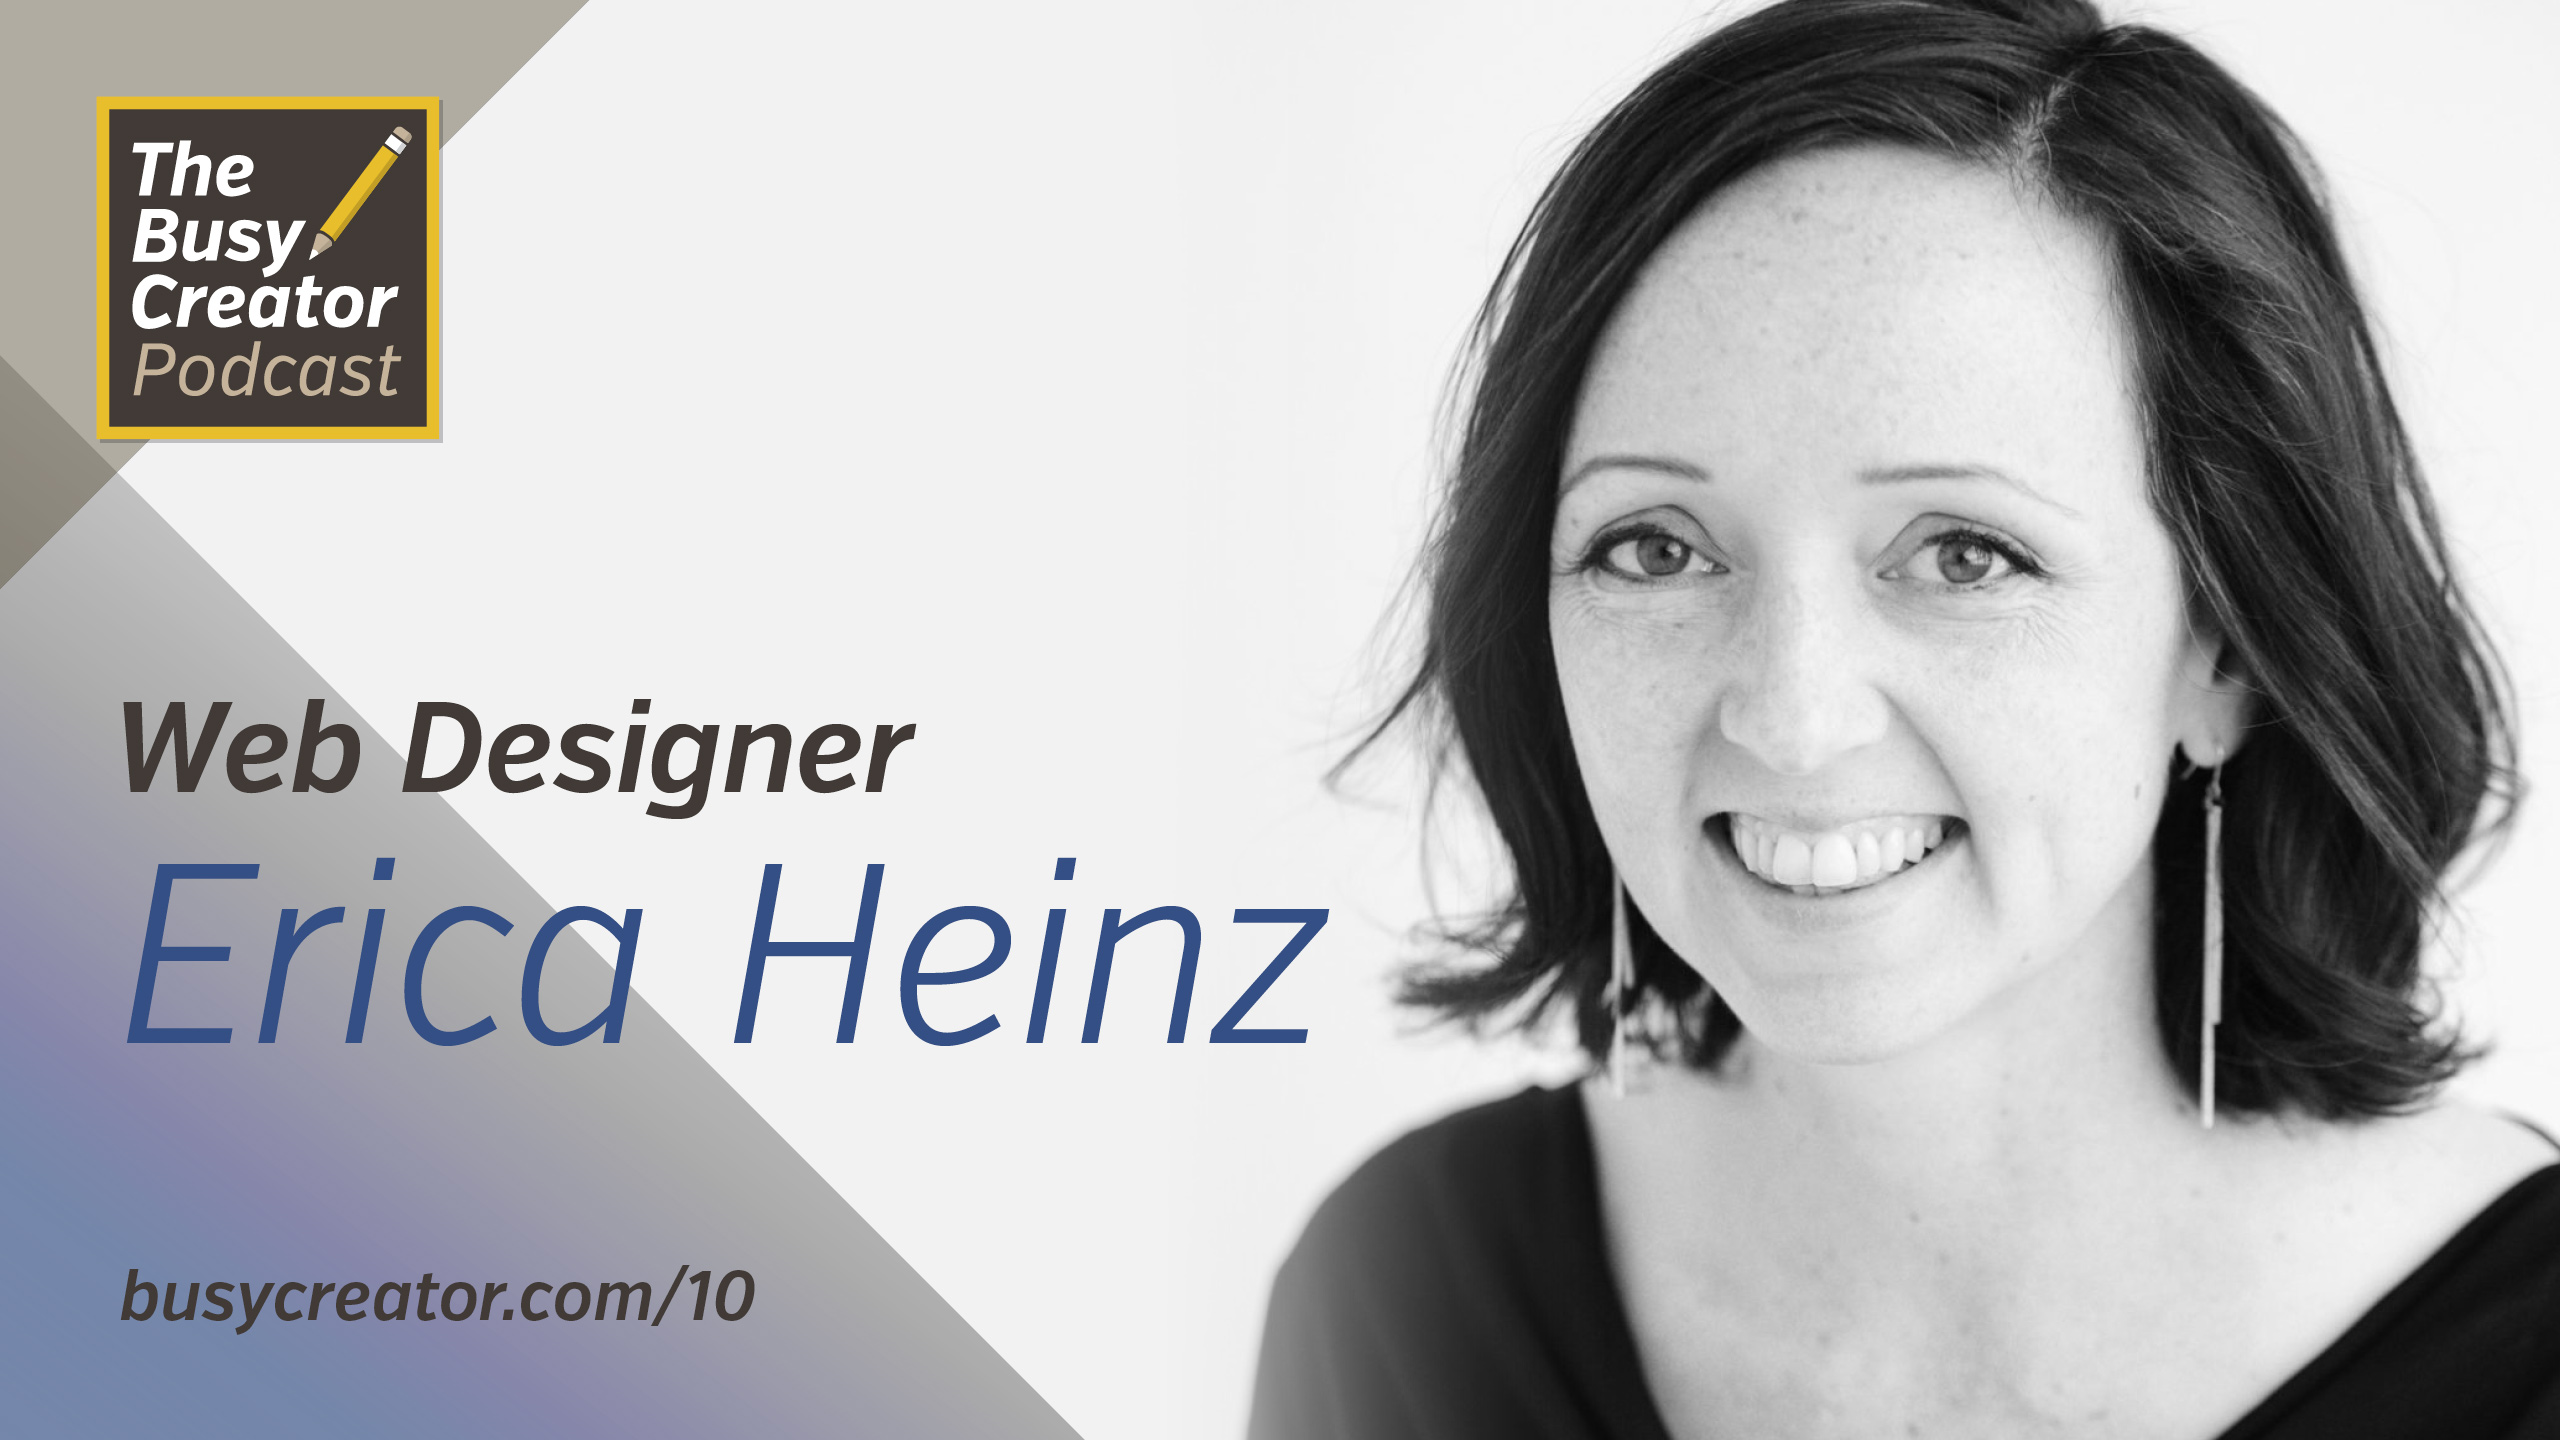 Web Designer Erica Heinz Discusses Her Projects and Goes Deep into Workflows & Tools